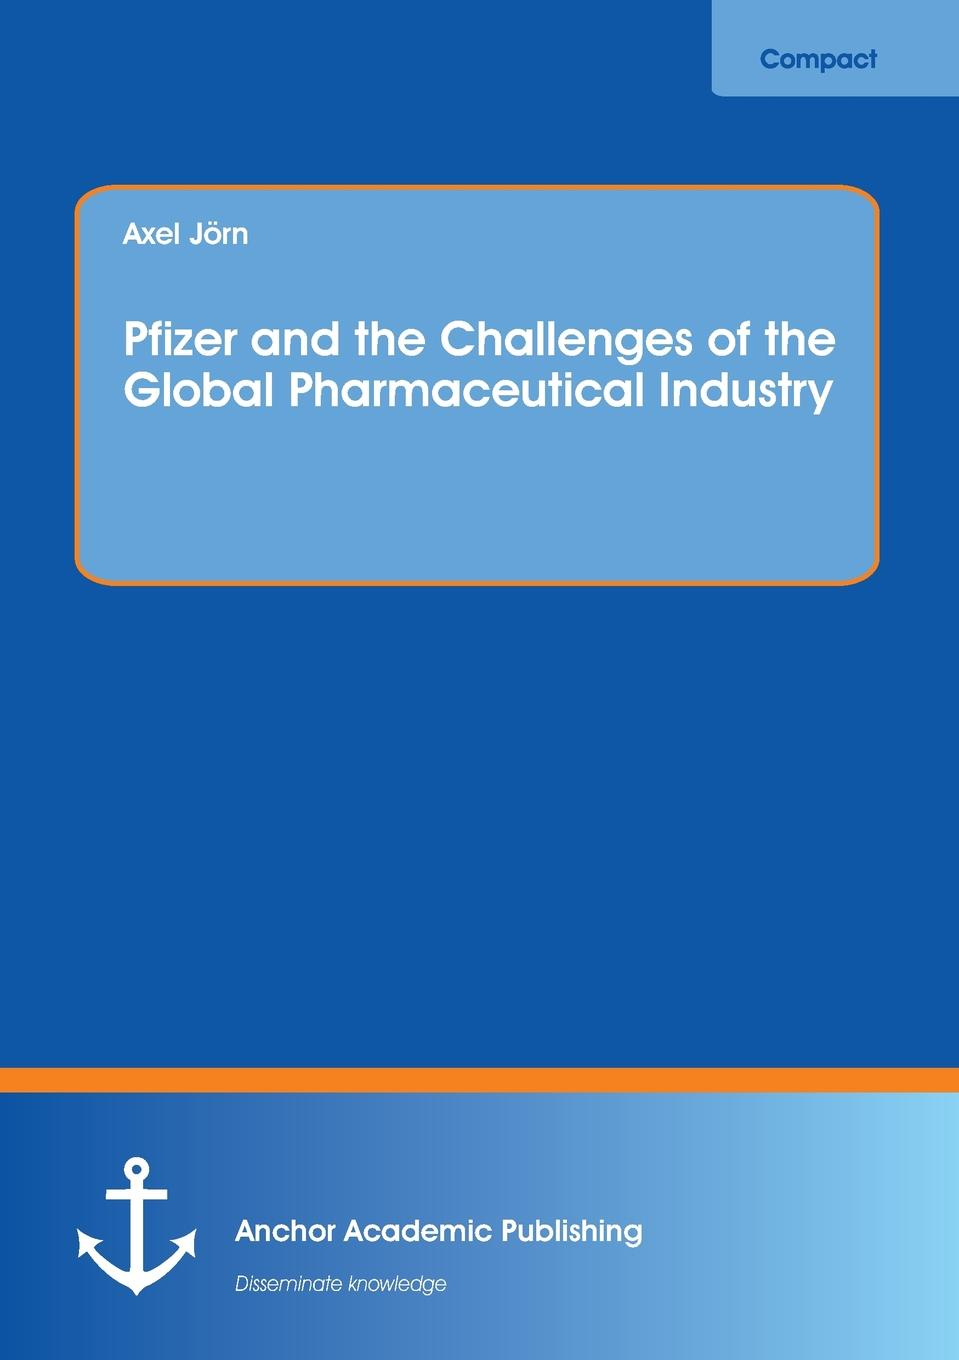 купить Axel Jörn Pfizer and the Challenges of the Global Pharmaceutical Industry по цене 3214 рублей